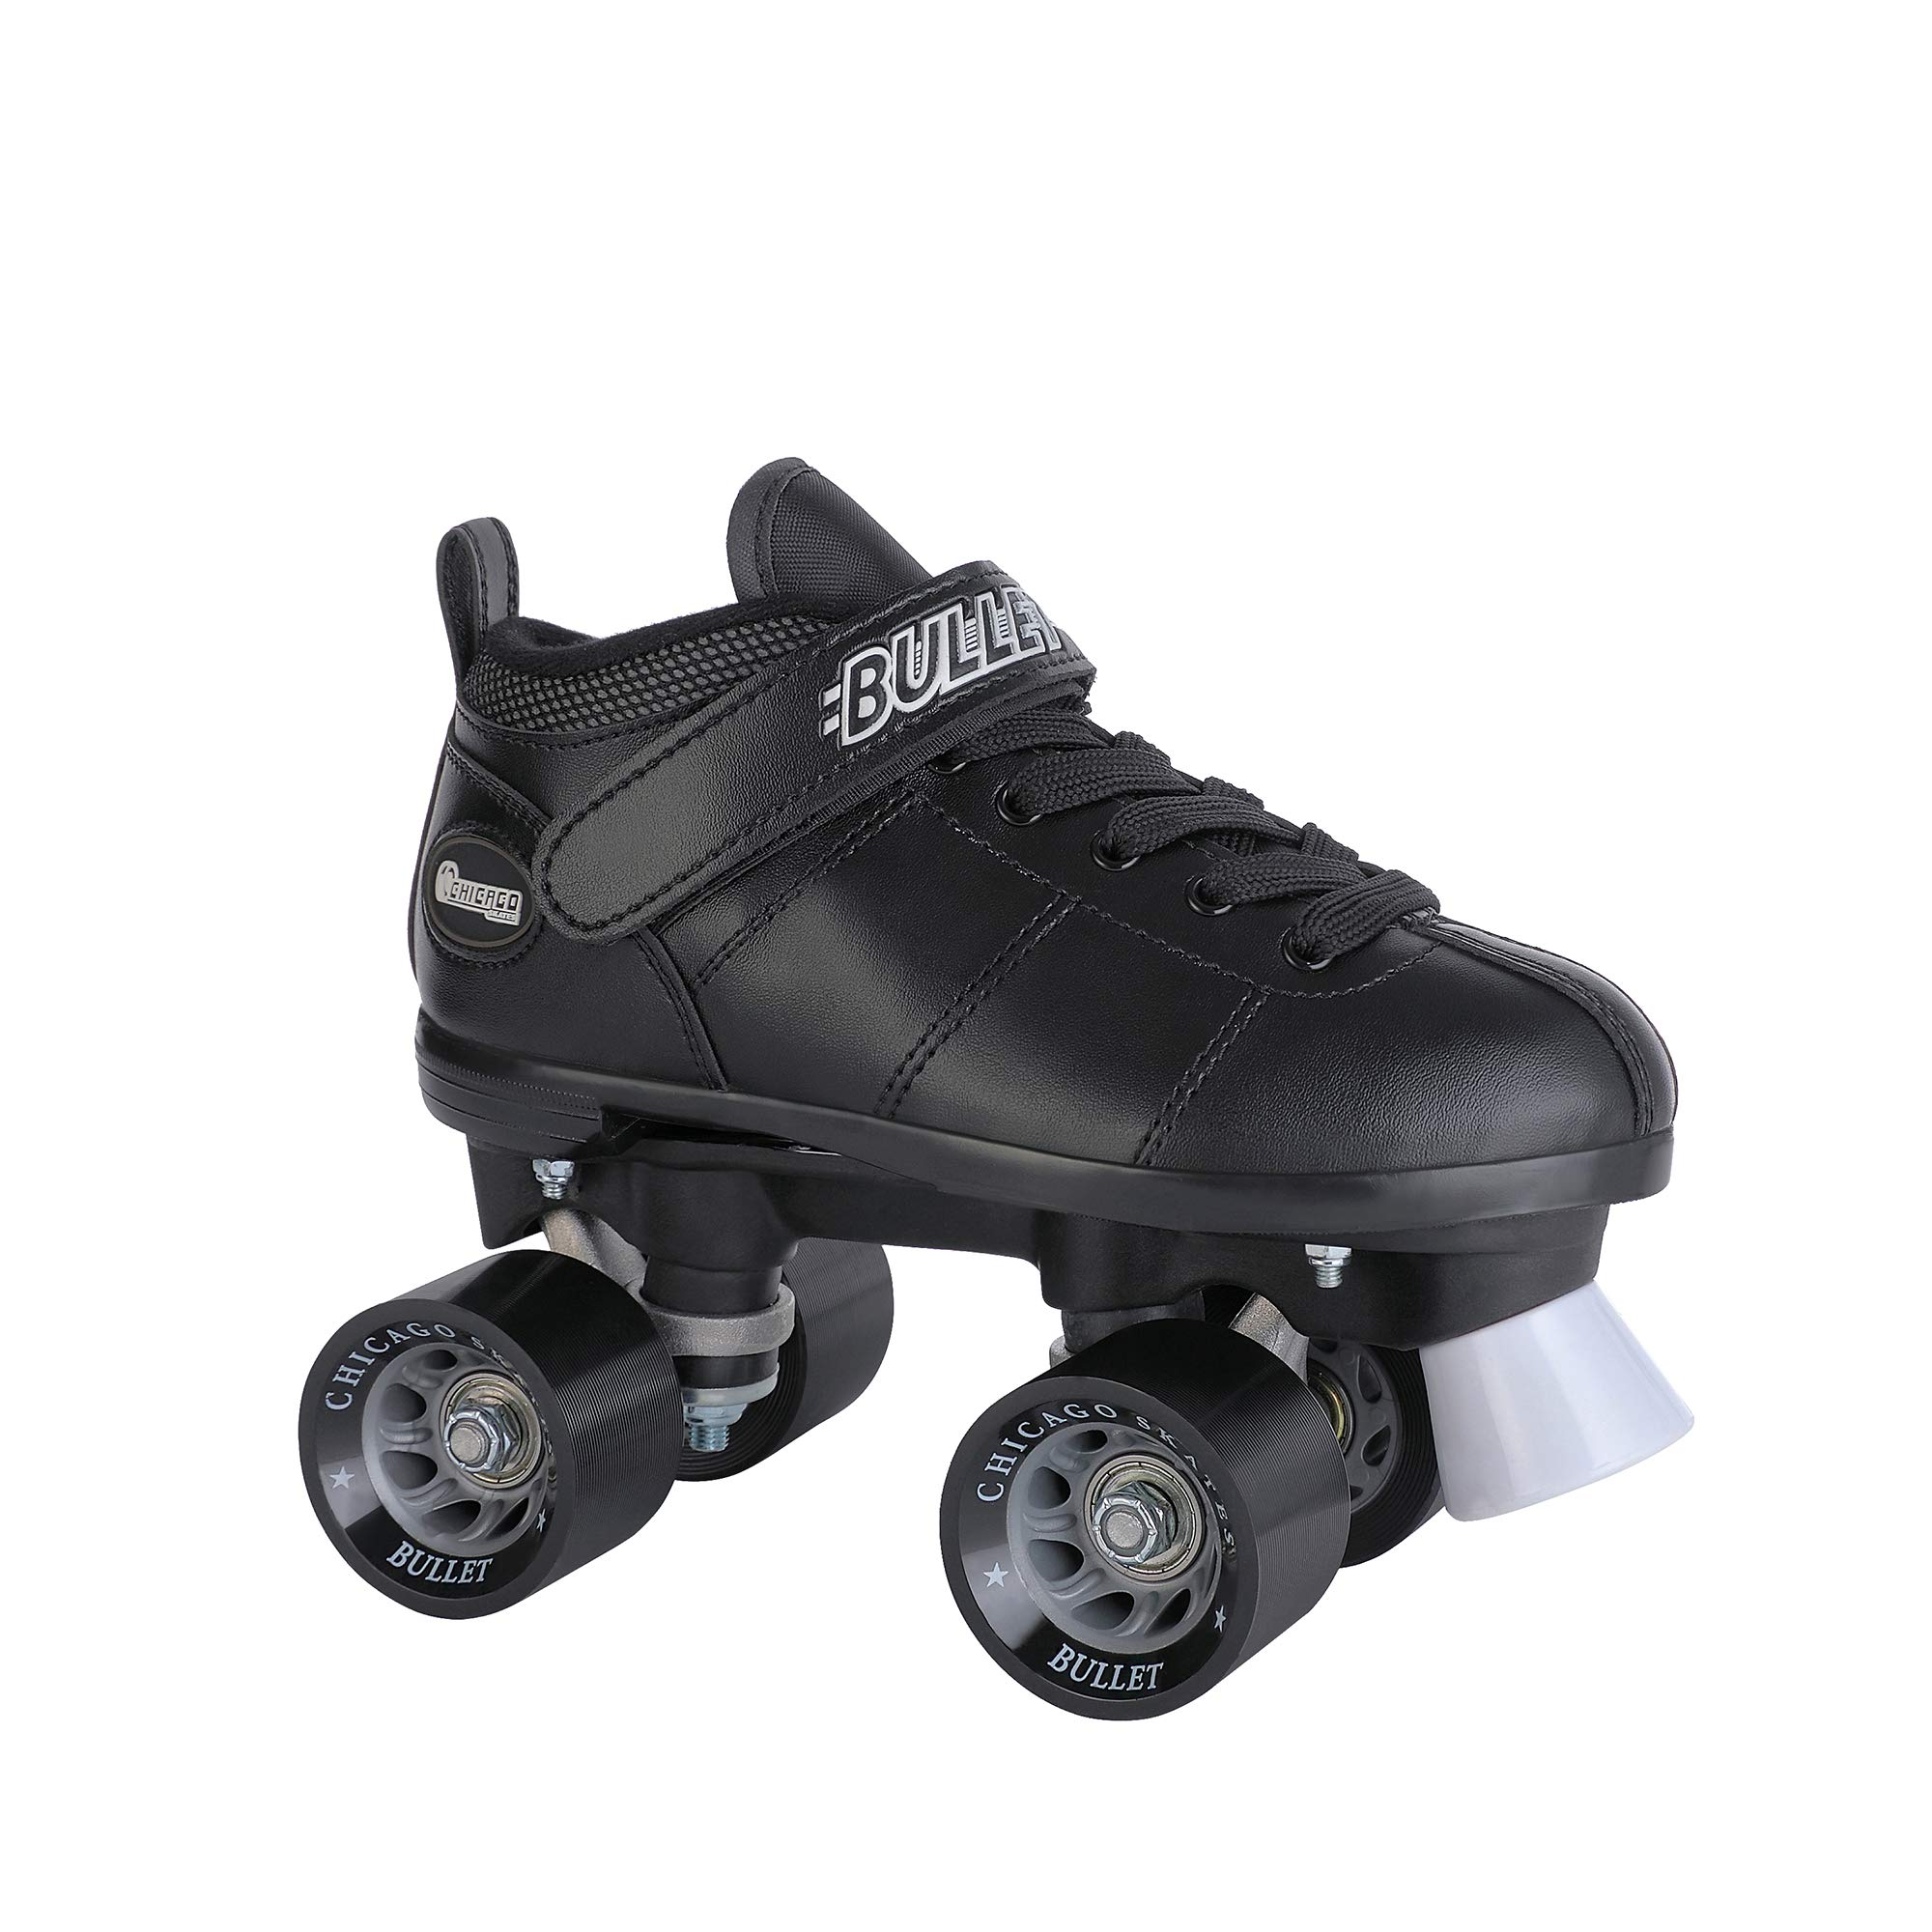 Chicago Bullet Men's Speed Roller Skate -Black Size 4 by Chicago Skates (Image #2)